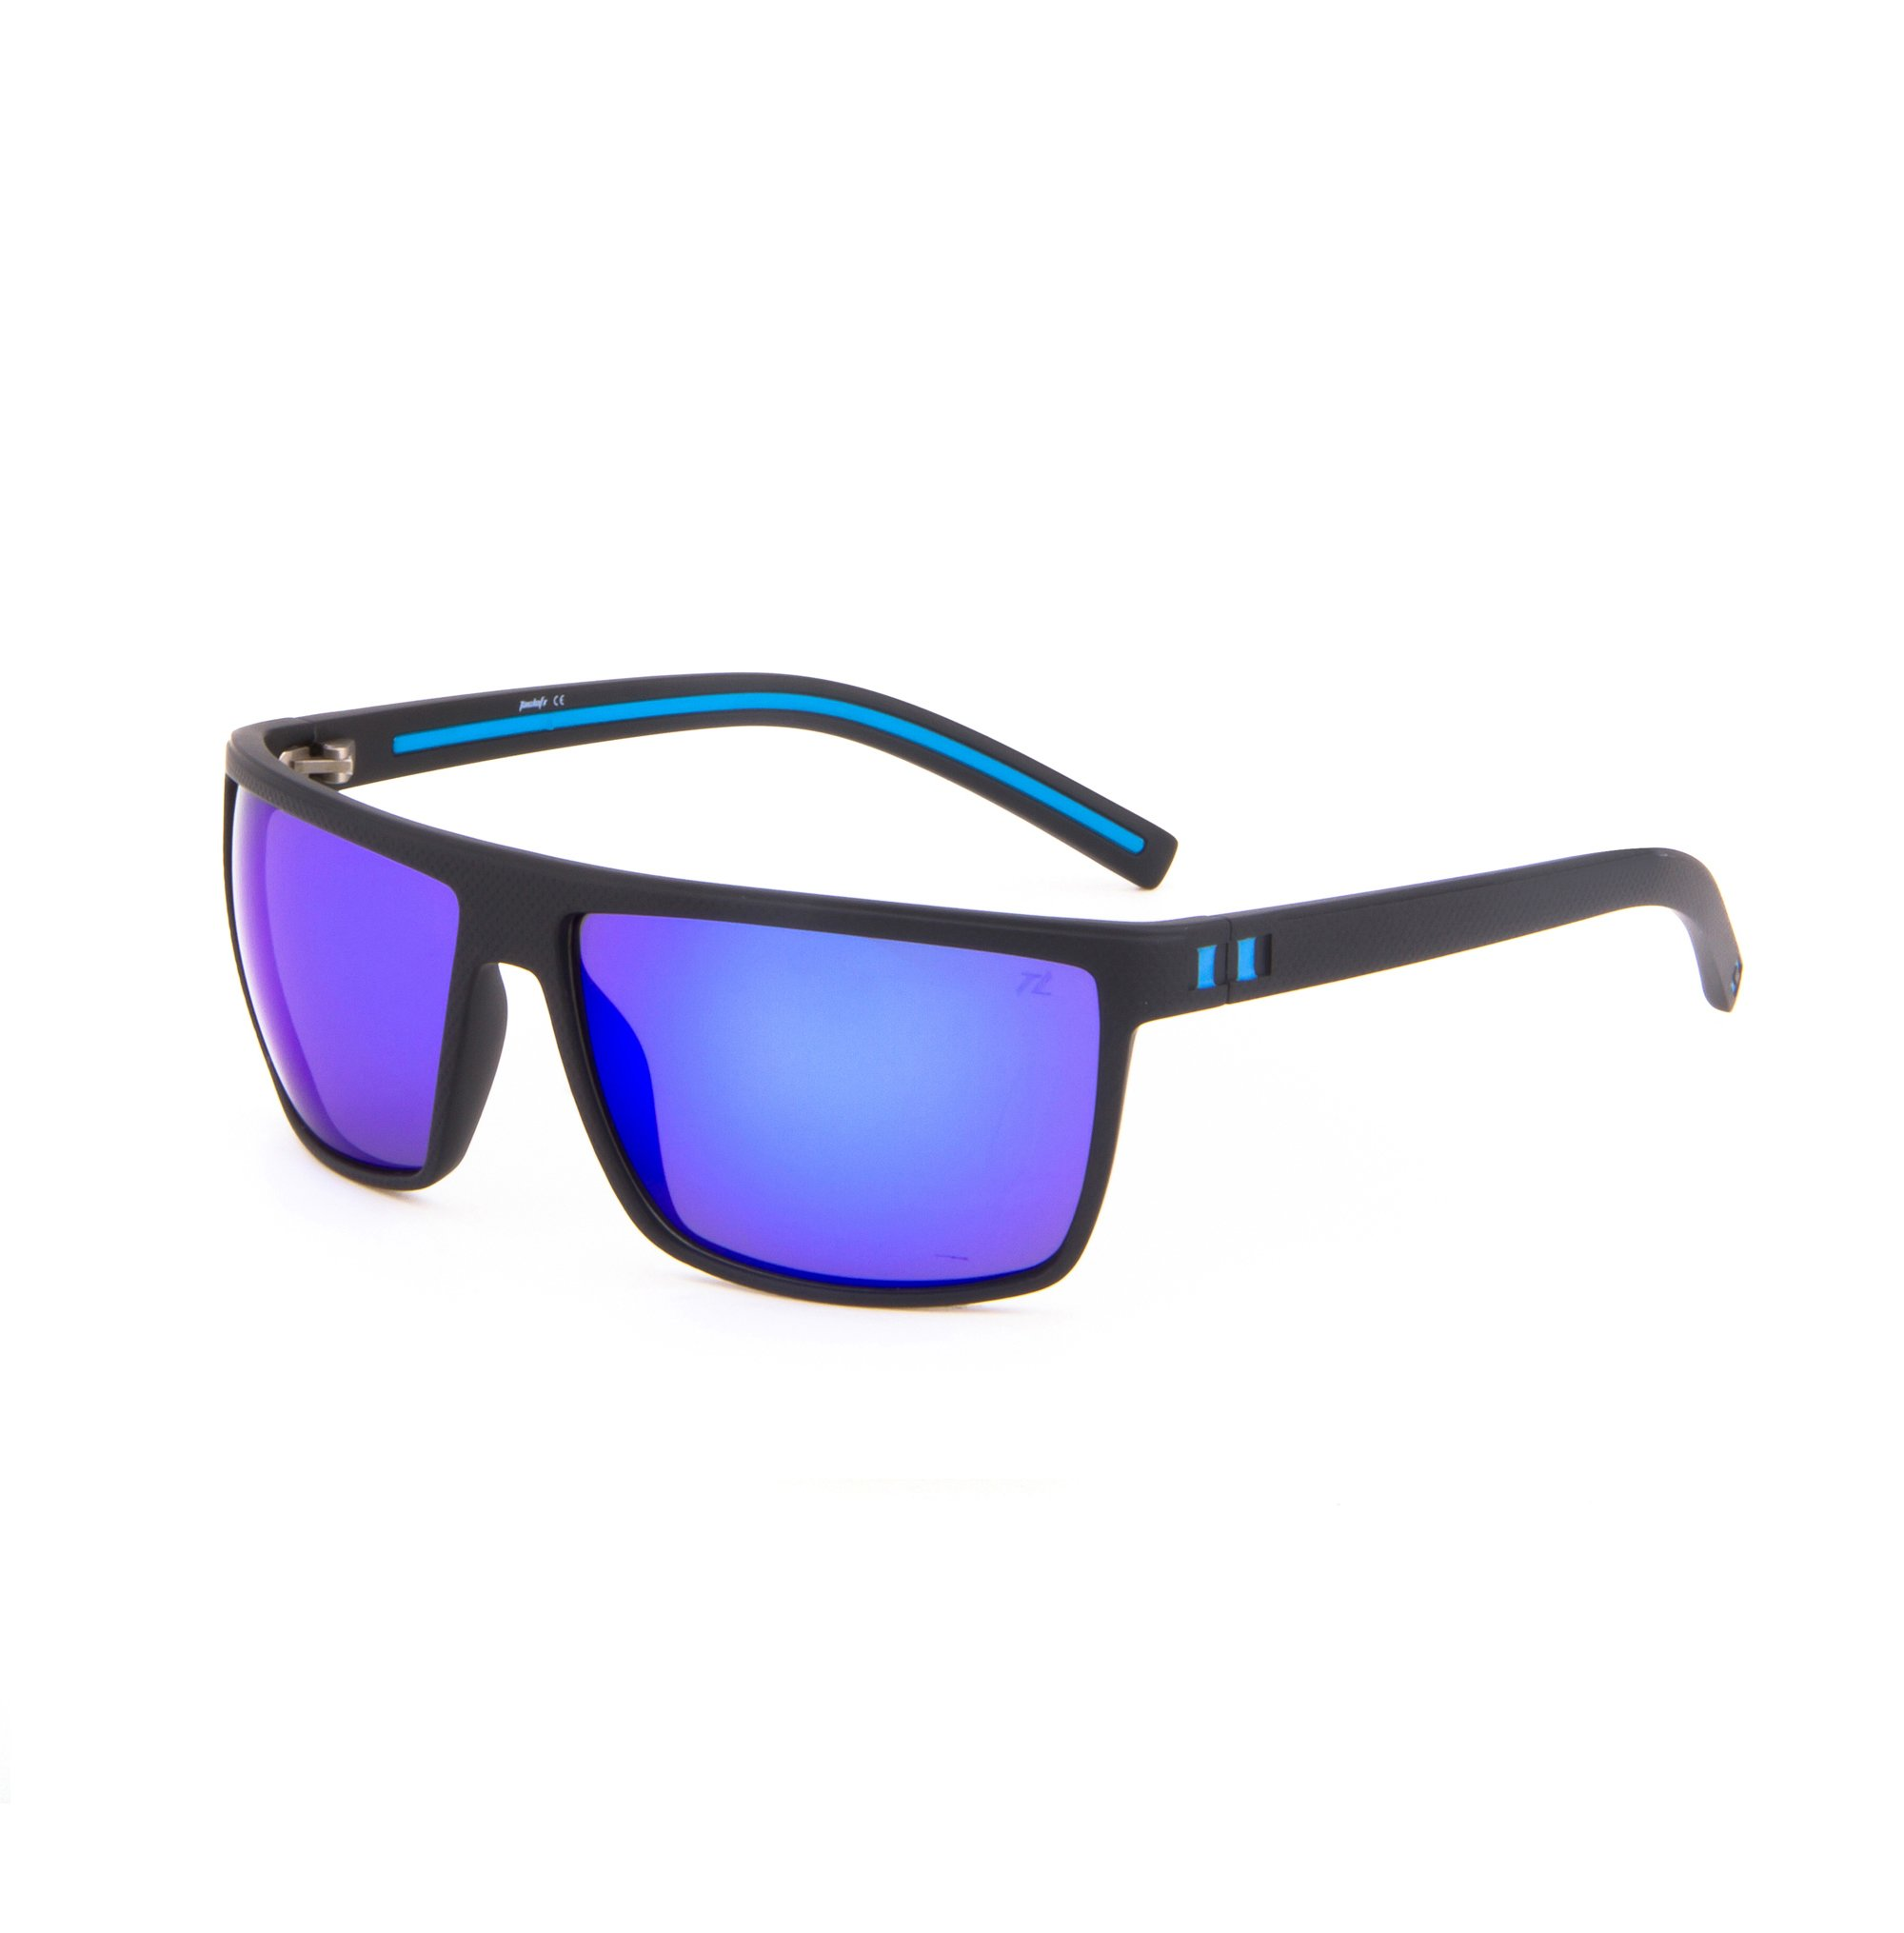 Tacloft Wayfarer 62mm Polarized Sunglasses TR008 (Black Blue Frame/Revo Blue Lens) by Tacloft